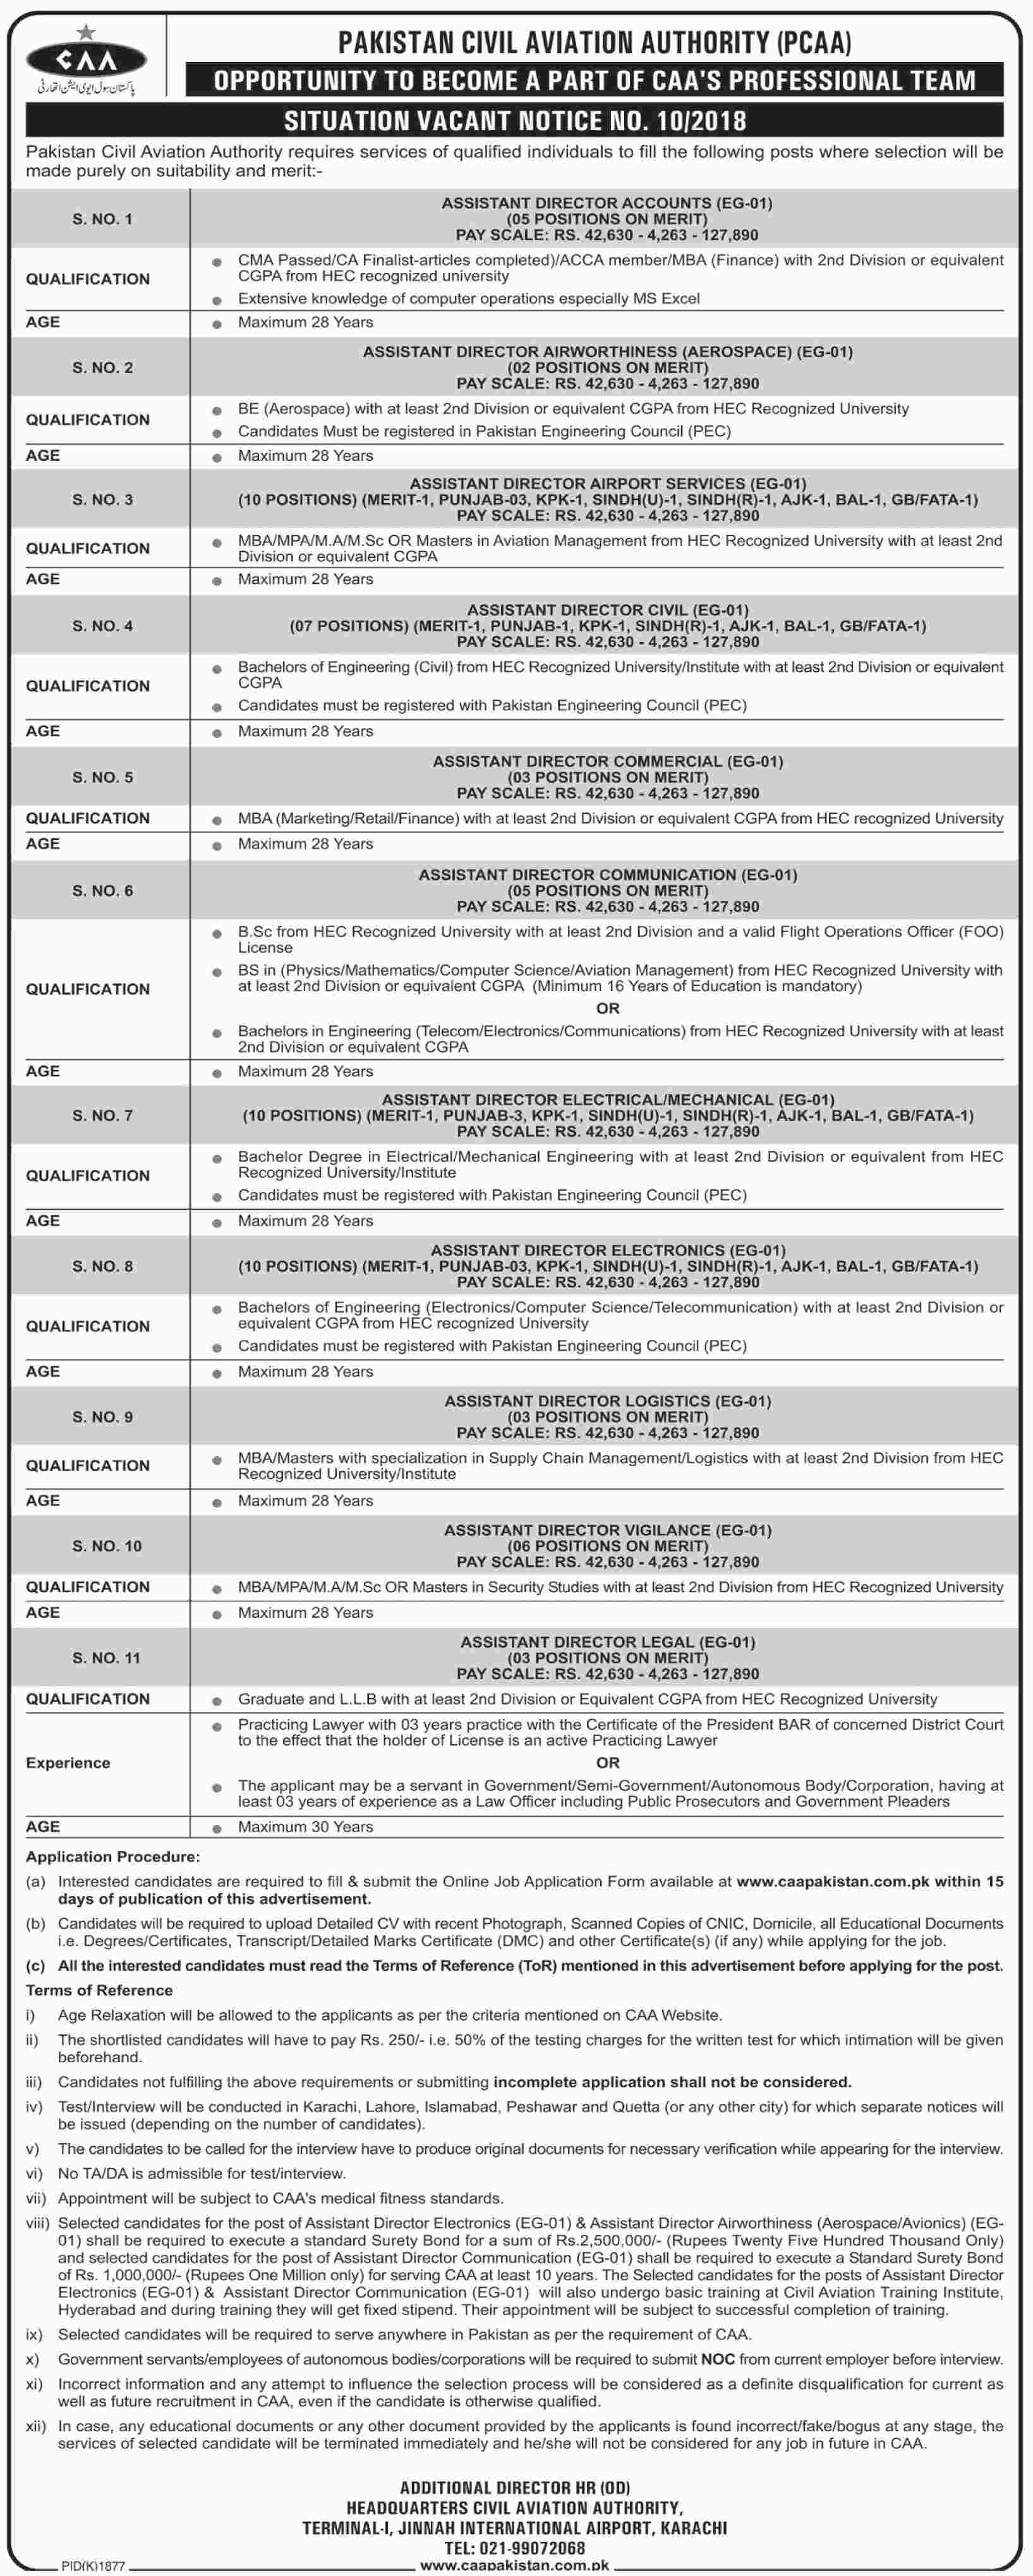 Civil Aviation Authority Job Opportunities Notice No 10